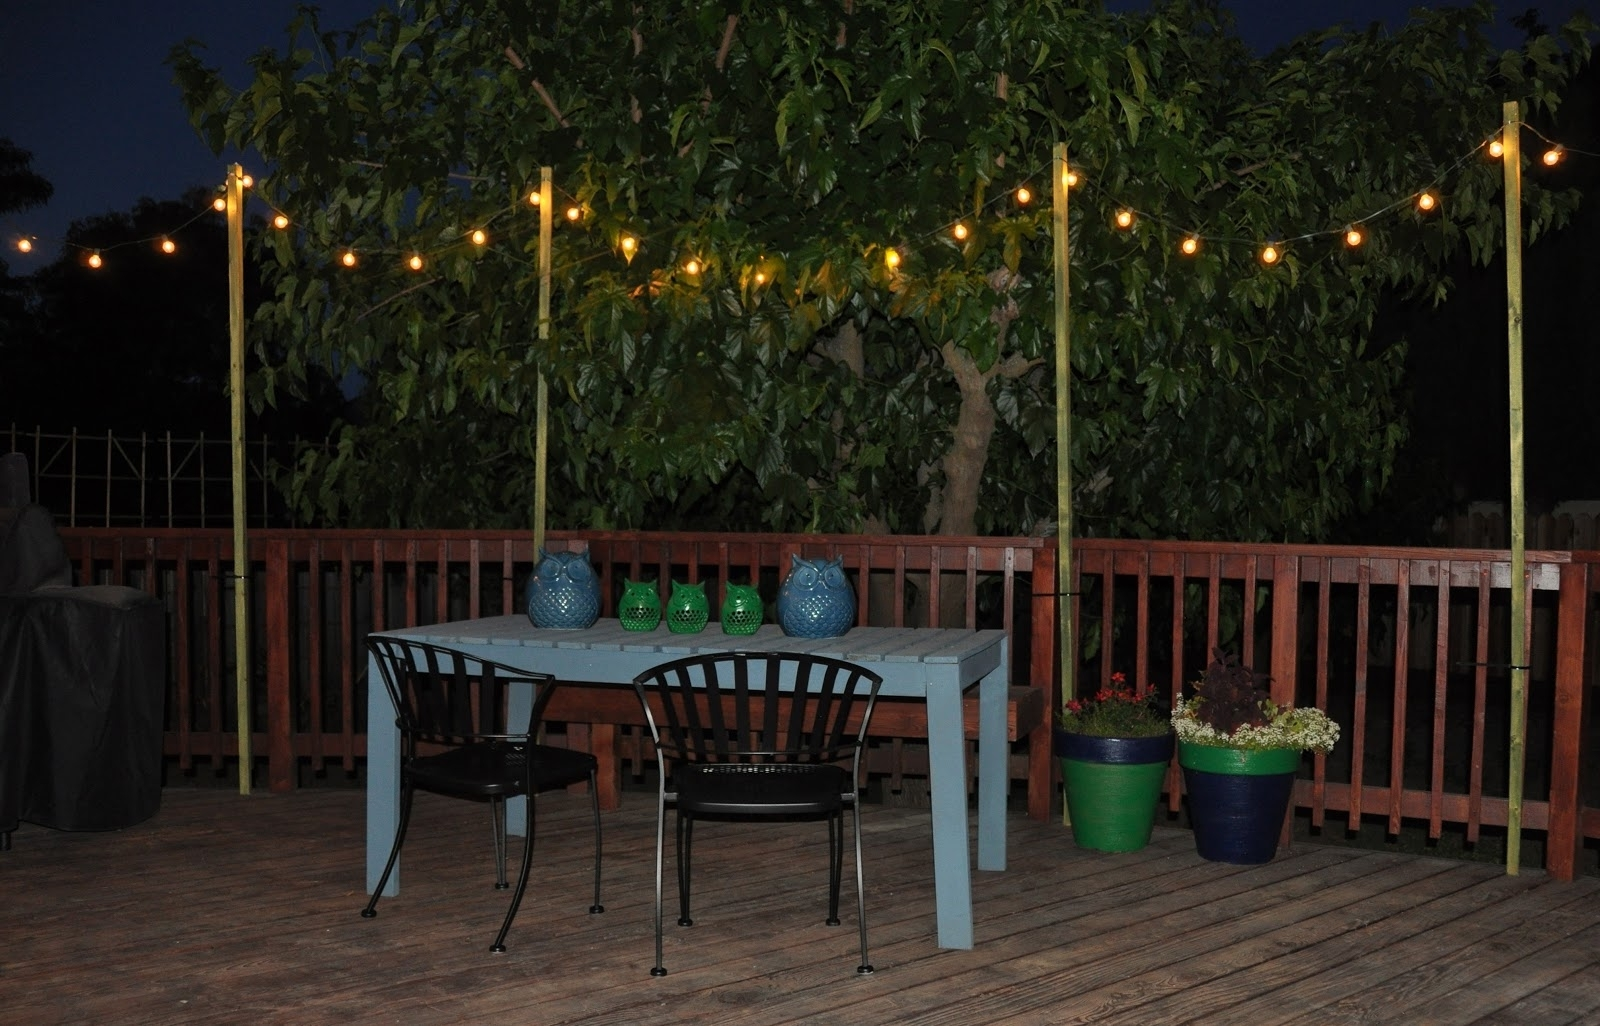 Glamorous Backyard String Lights Decorative Indoor Porch Led Hanging With Recent Hanging Outdoor Lights On Deck (View 6 of 20)